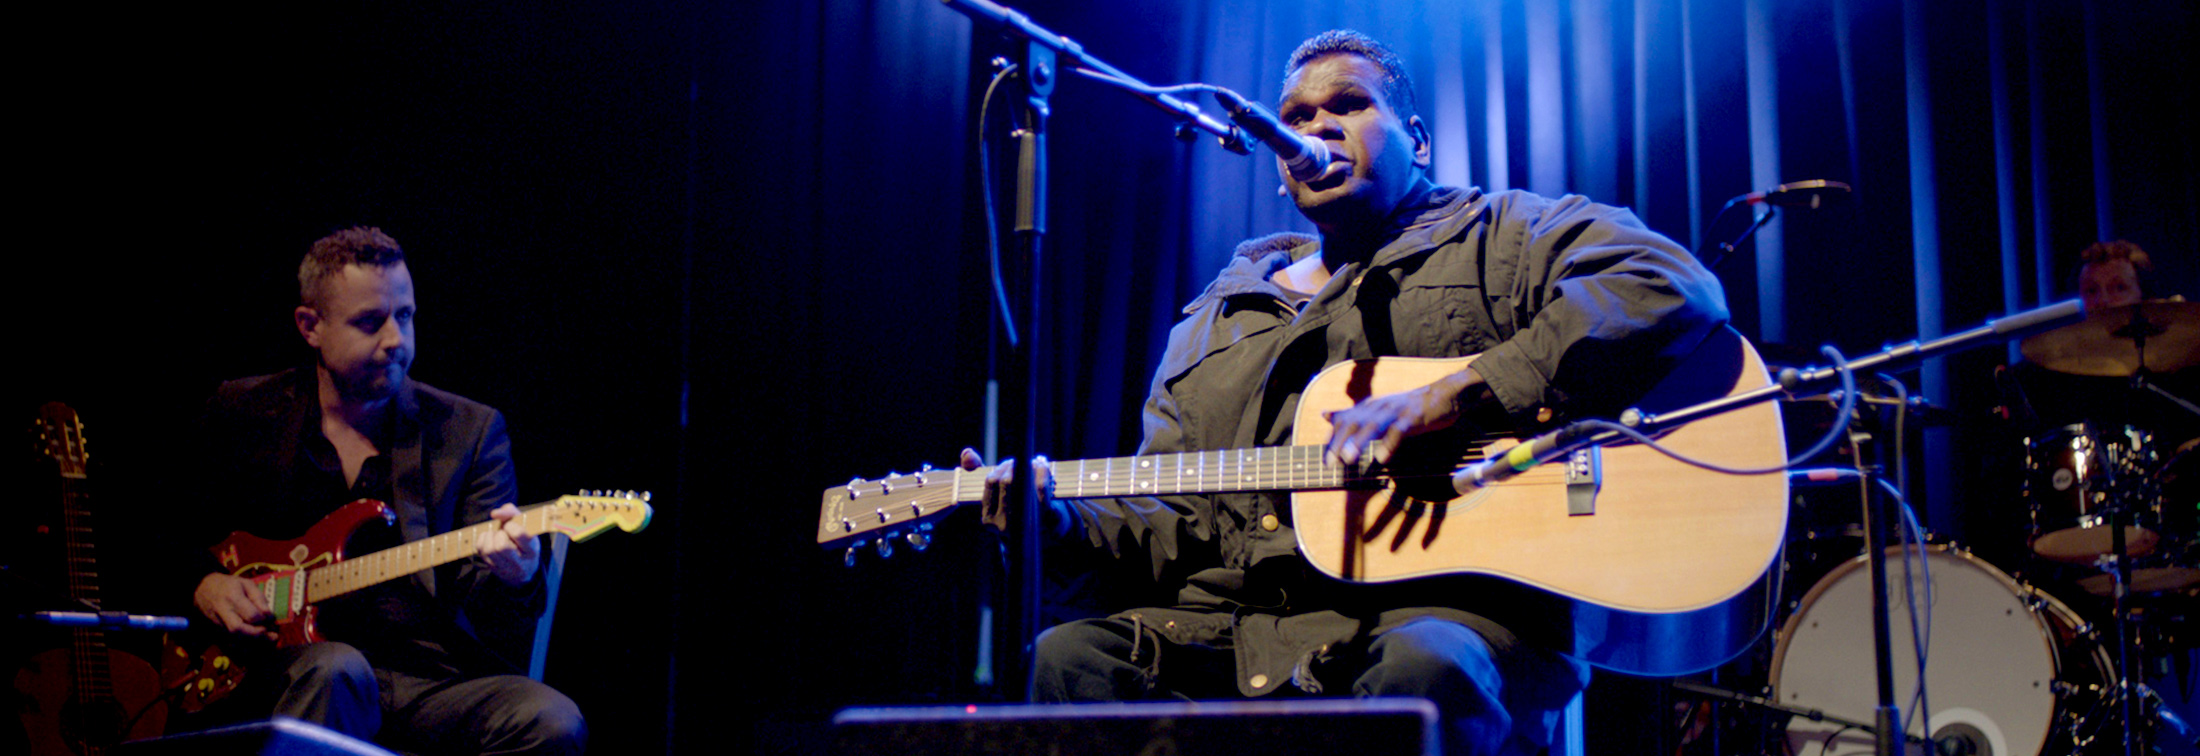 win, comp, comps, competition, giveaway, giveaways, prize, prizes, Gurrumul